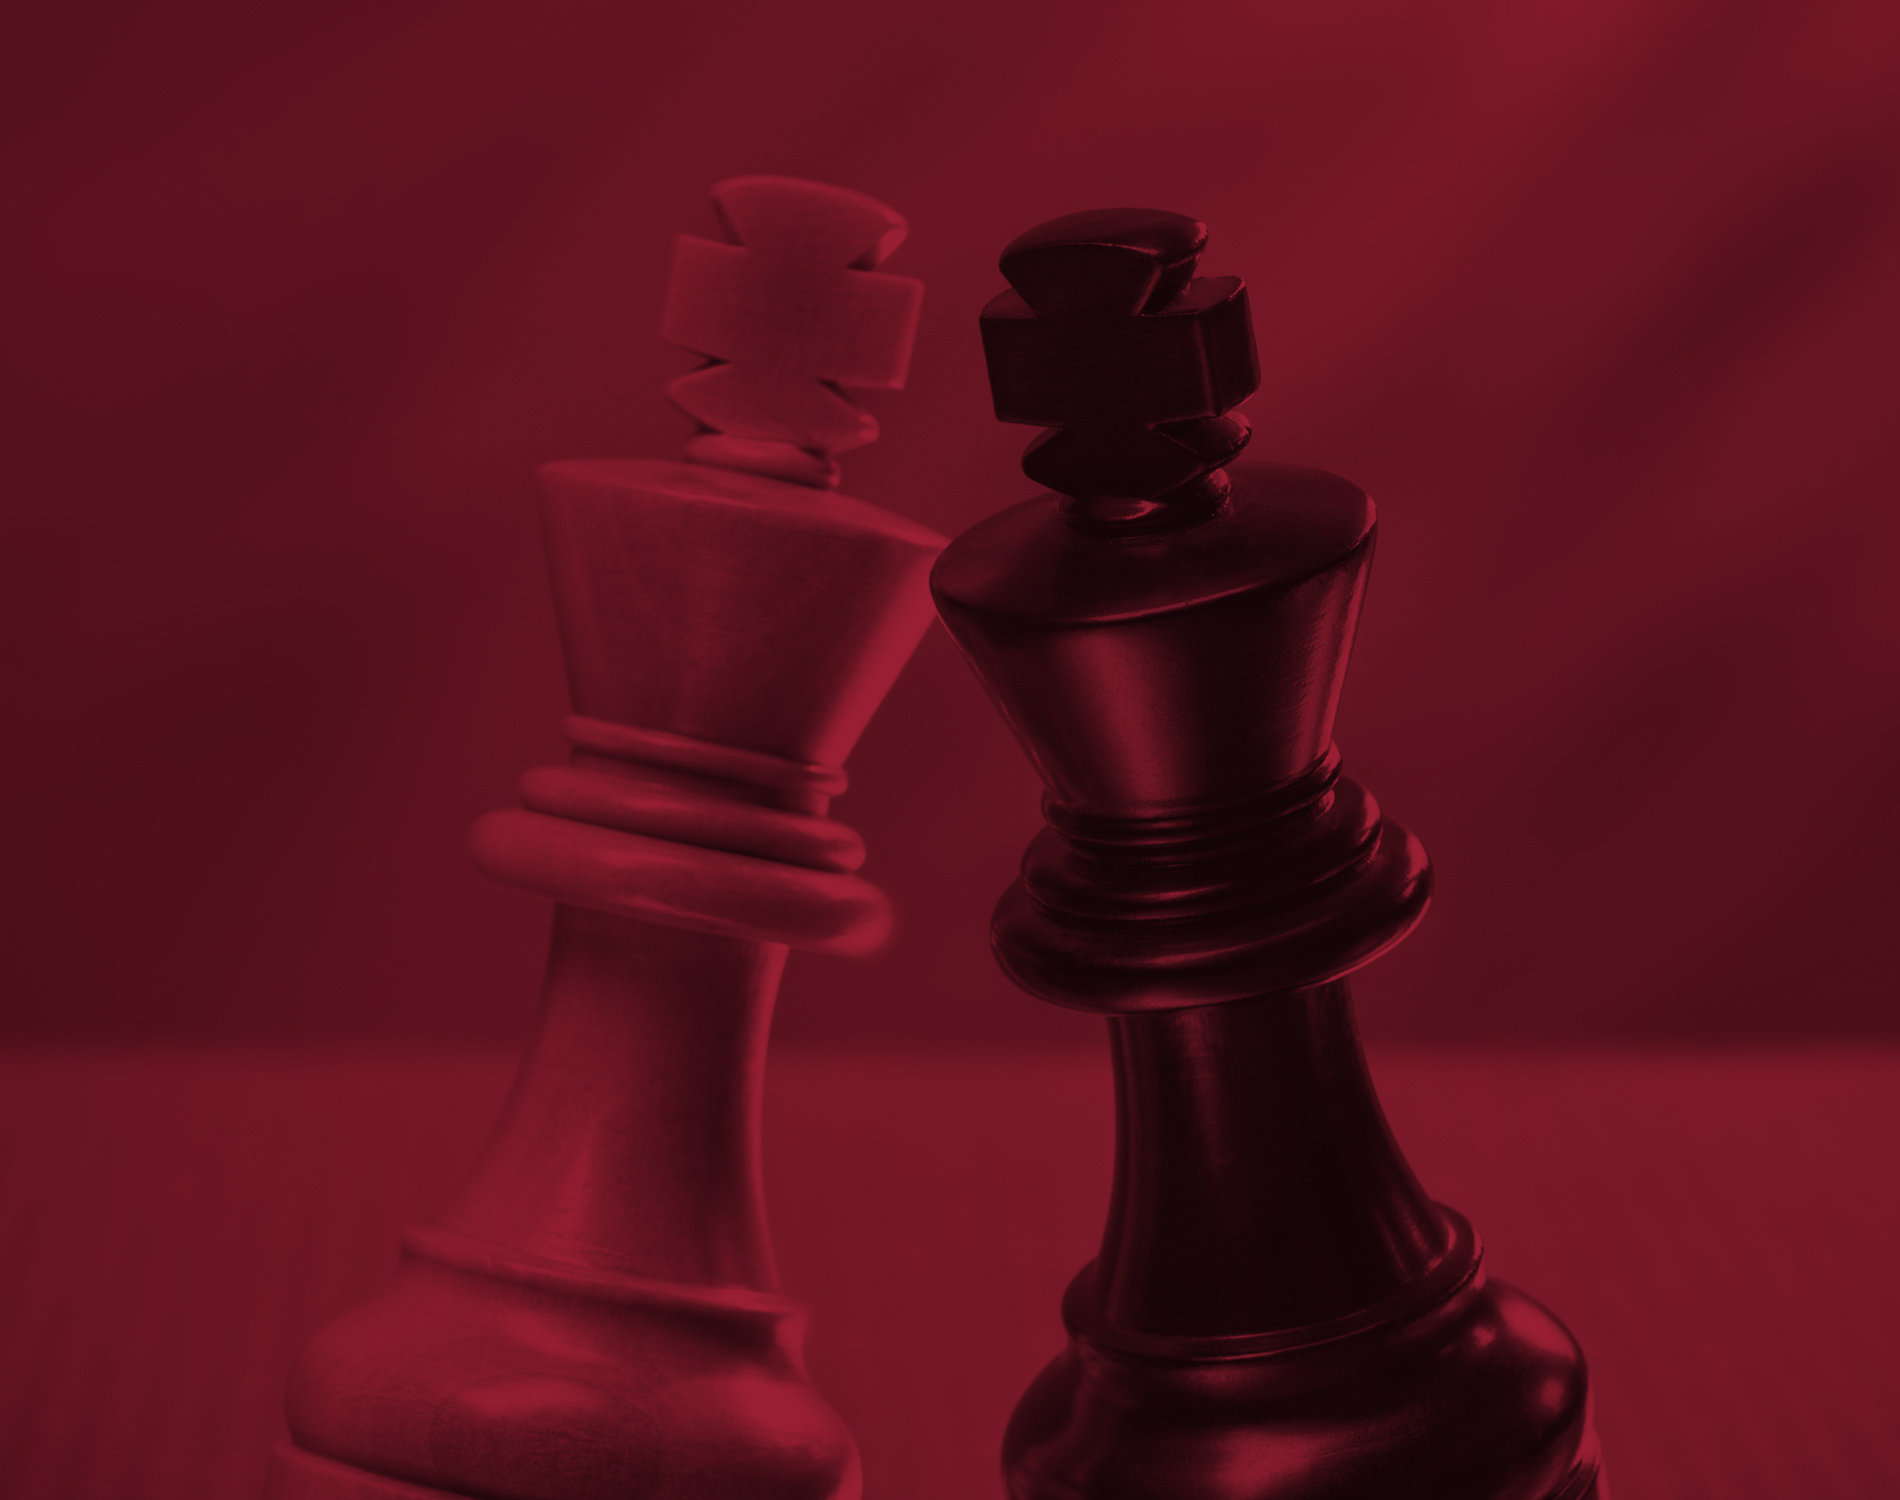 Chess Pieces with a red overlay